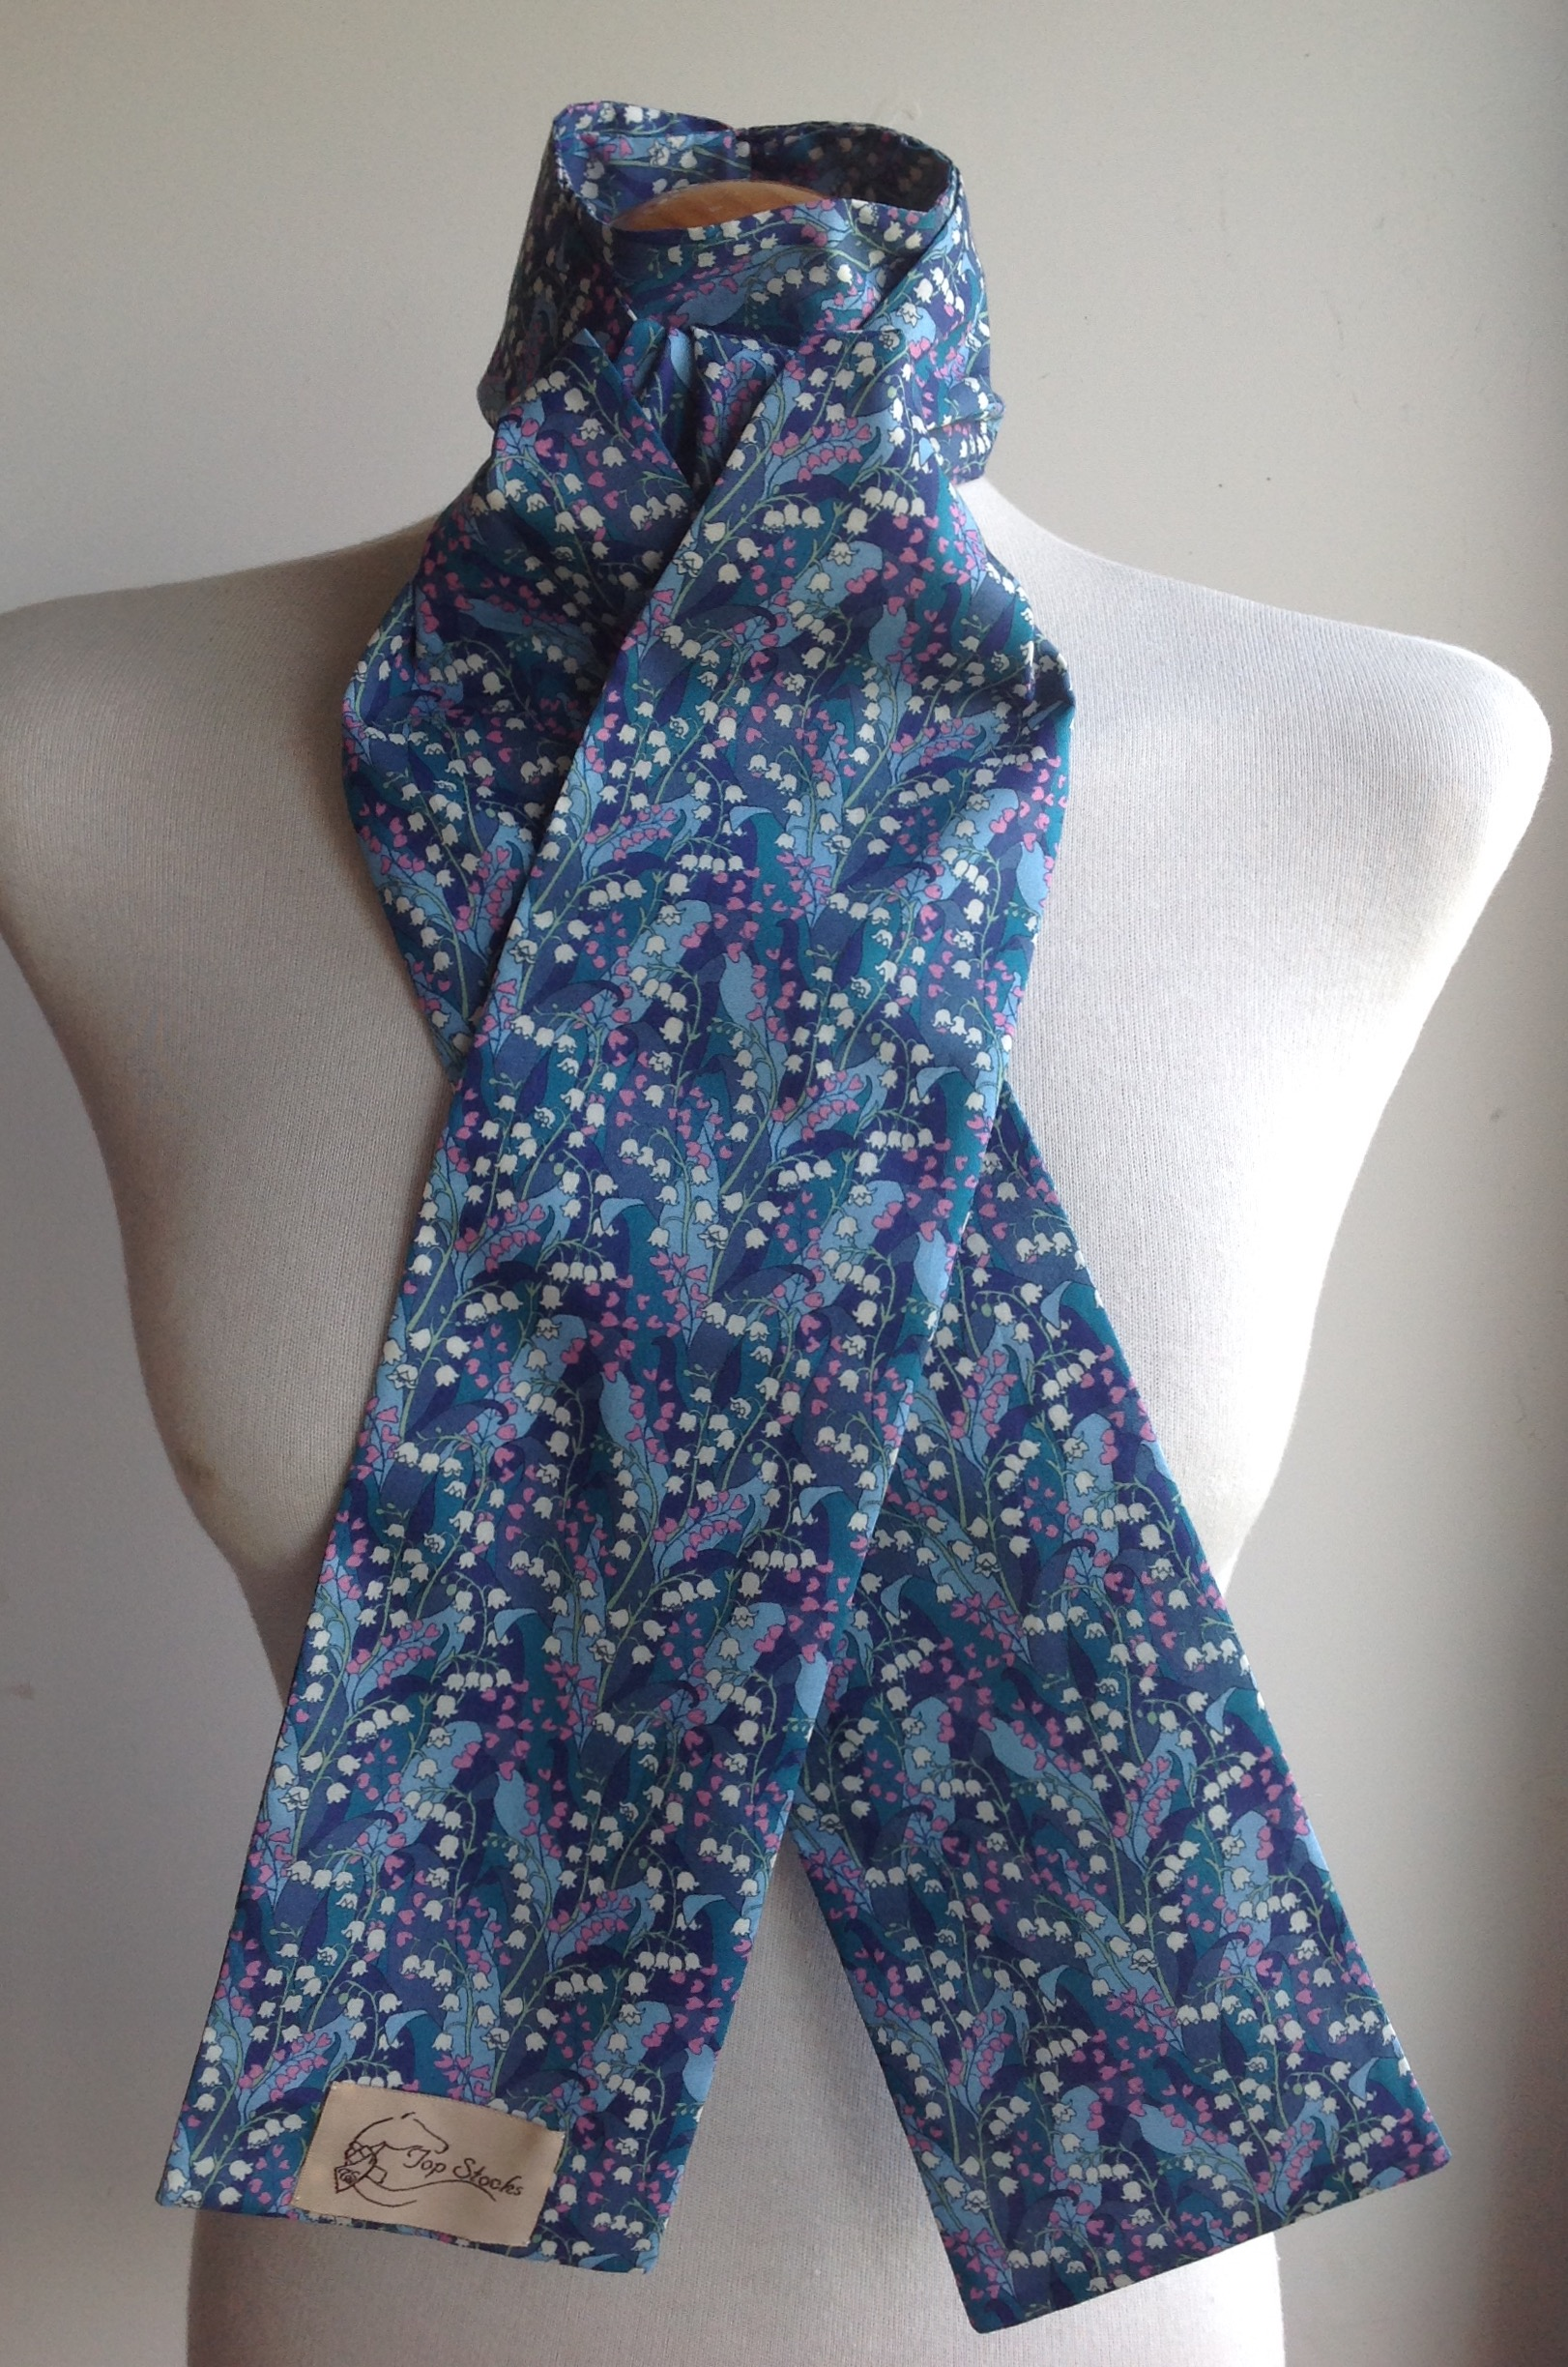 Shaped to tie Liberty tana lawn stock - Wylde blue multi